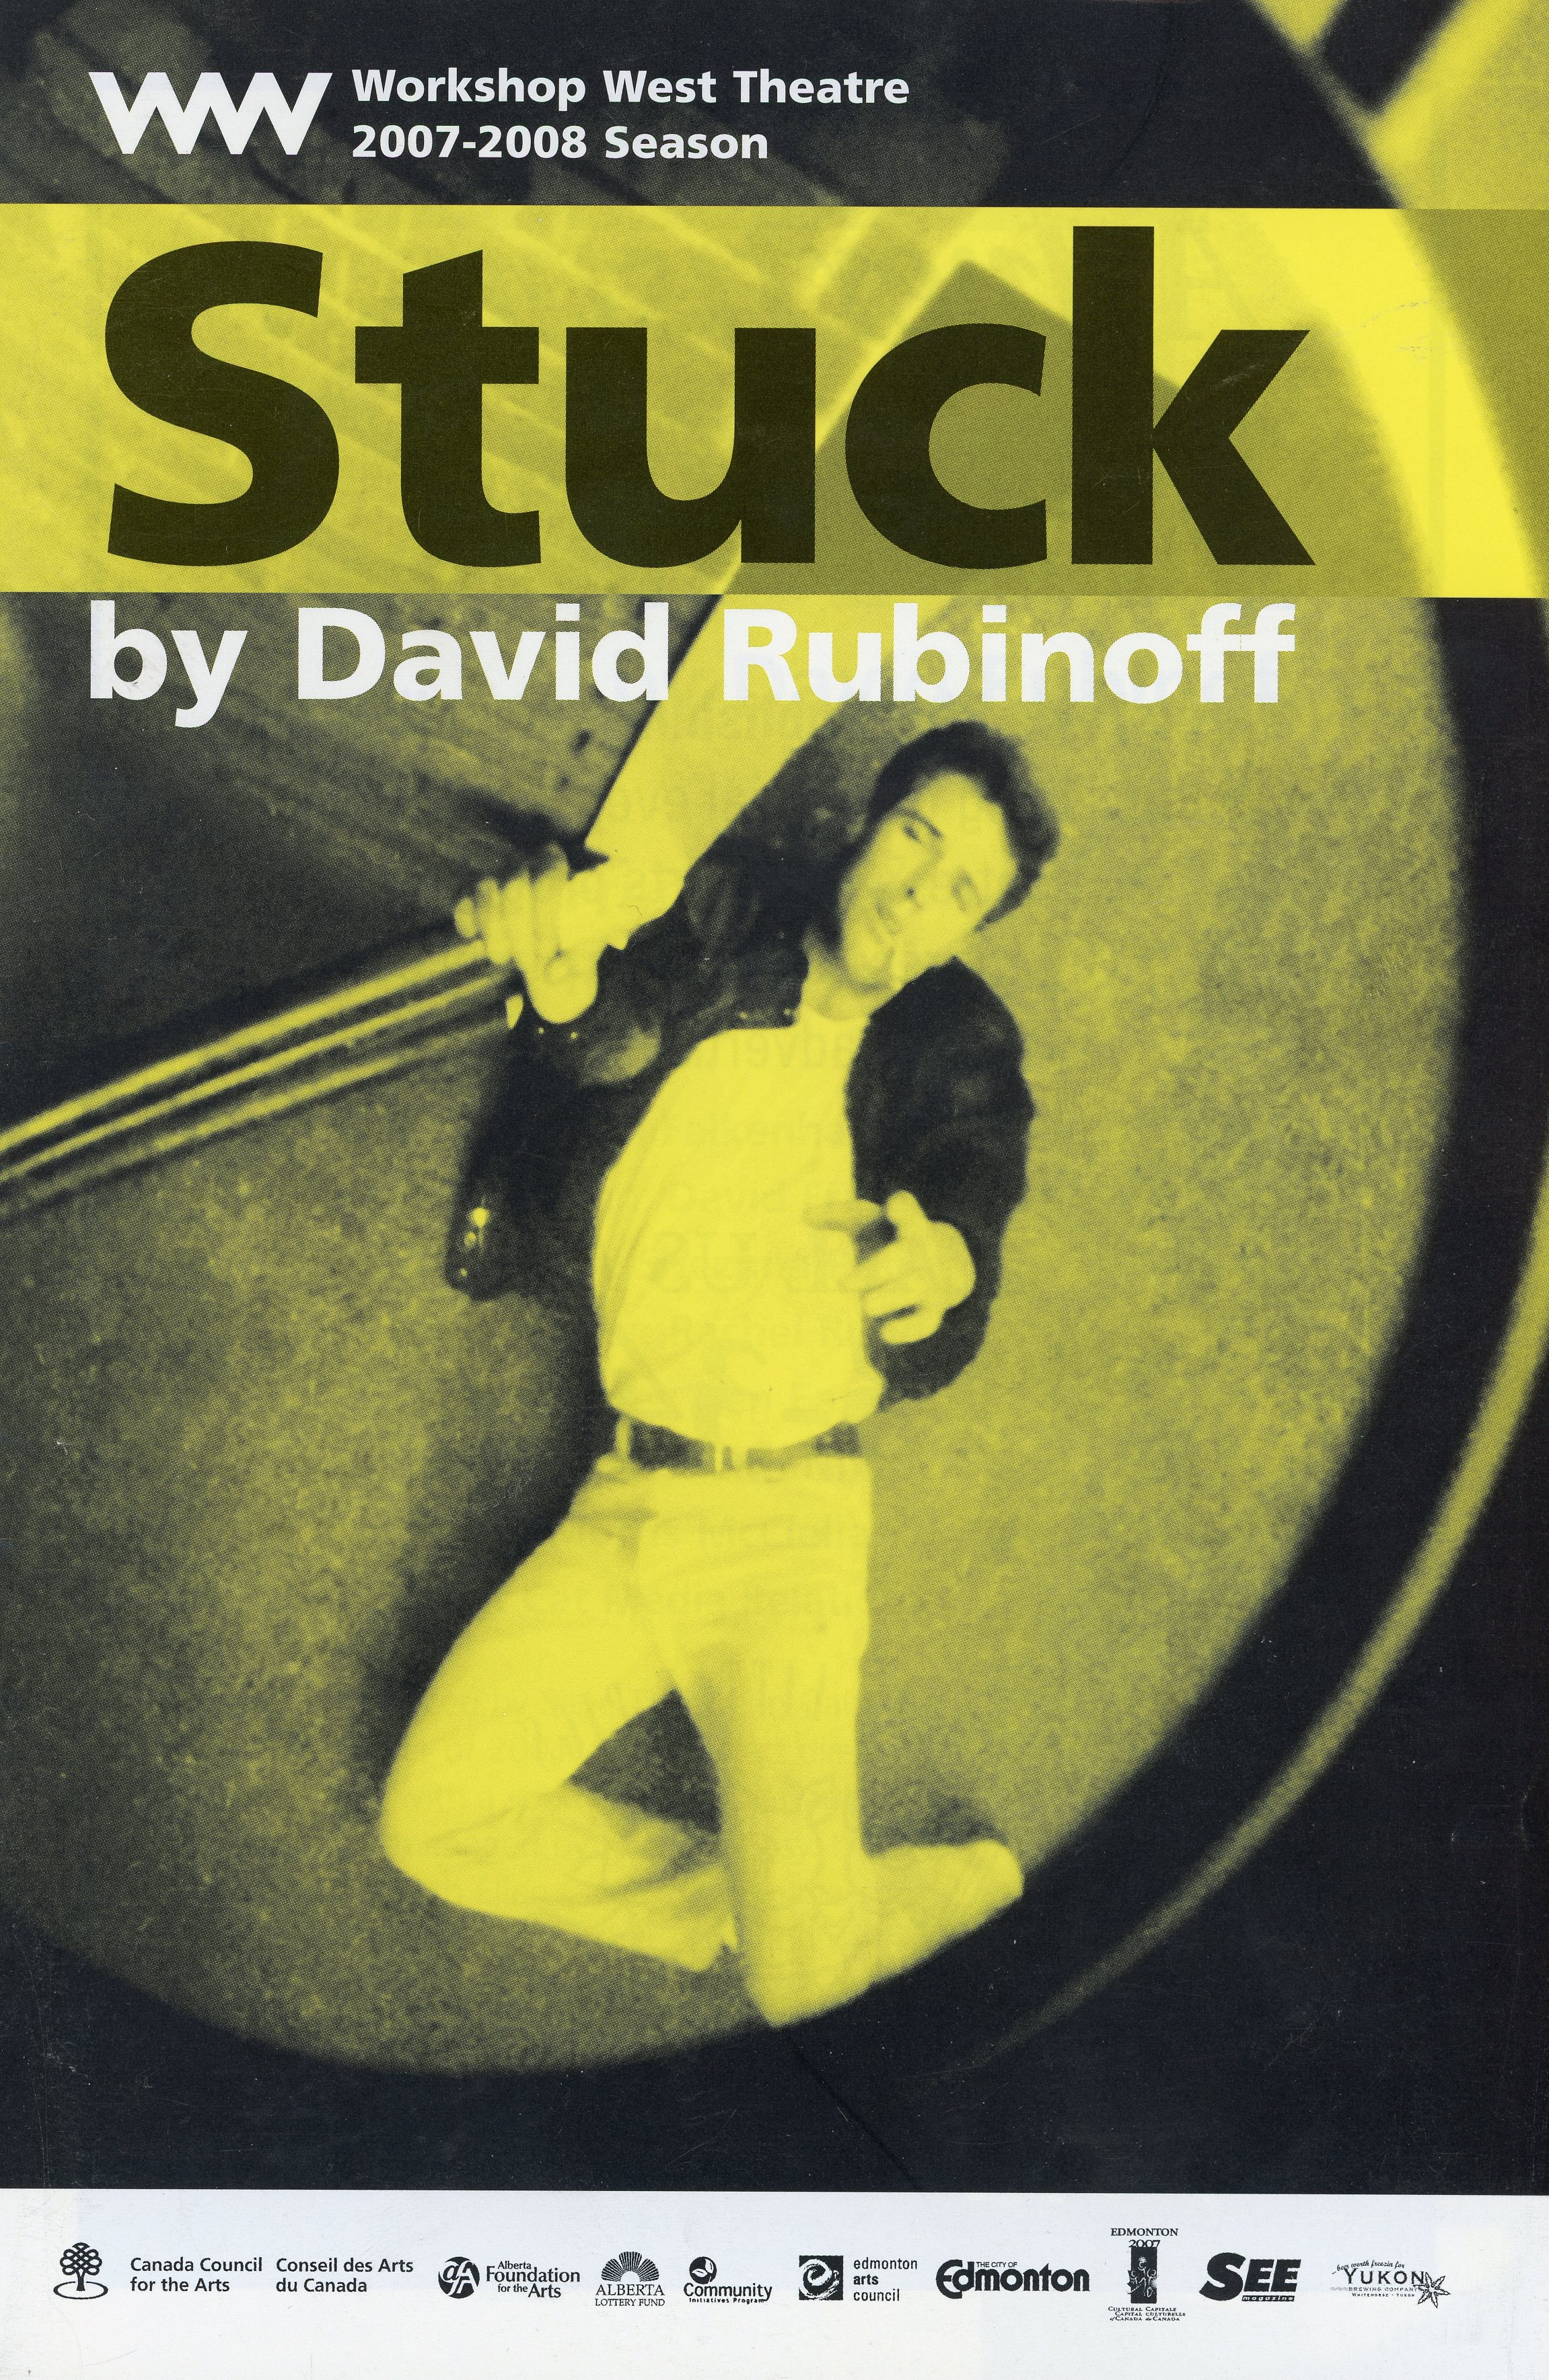 Stuck (2007-2009)-Production Cover_JPEG.jpg